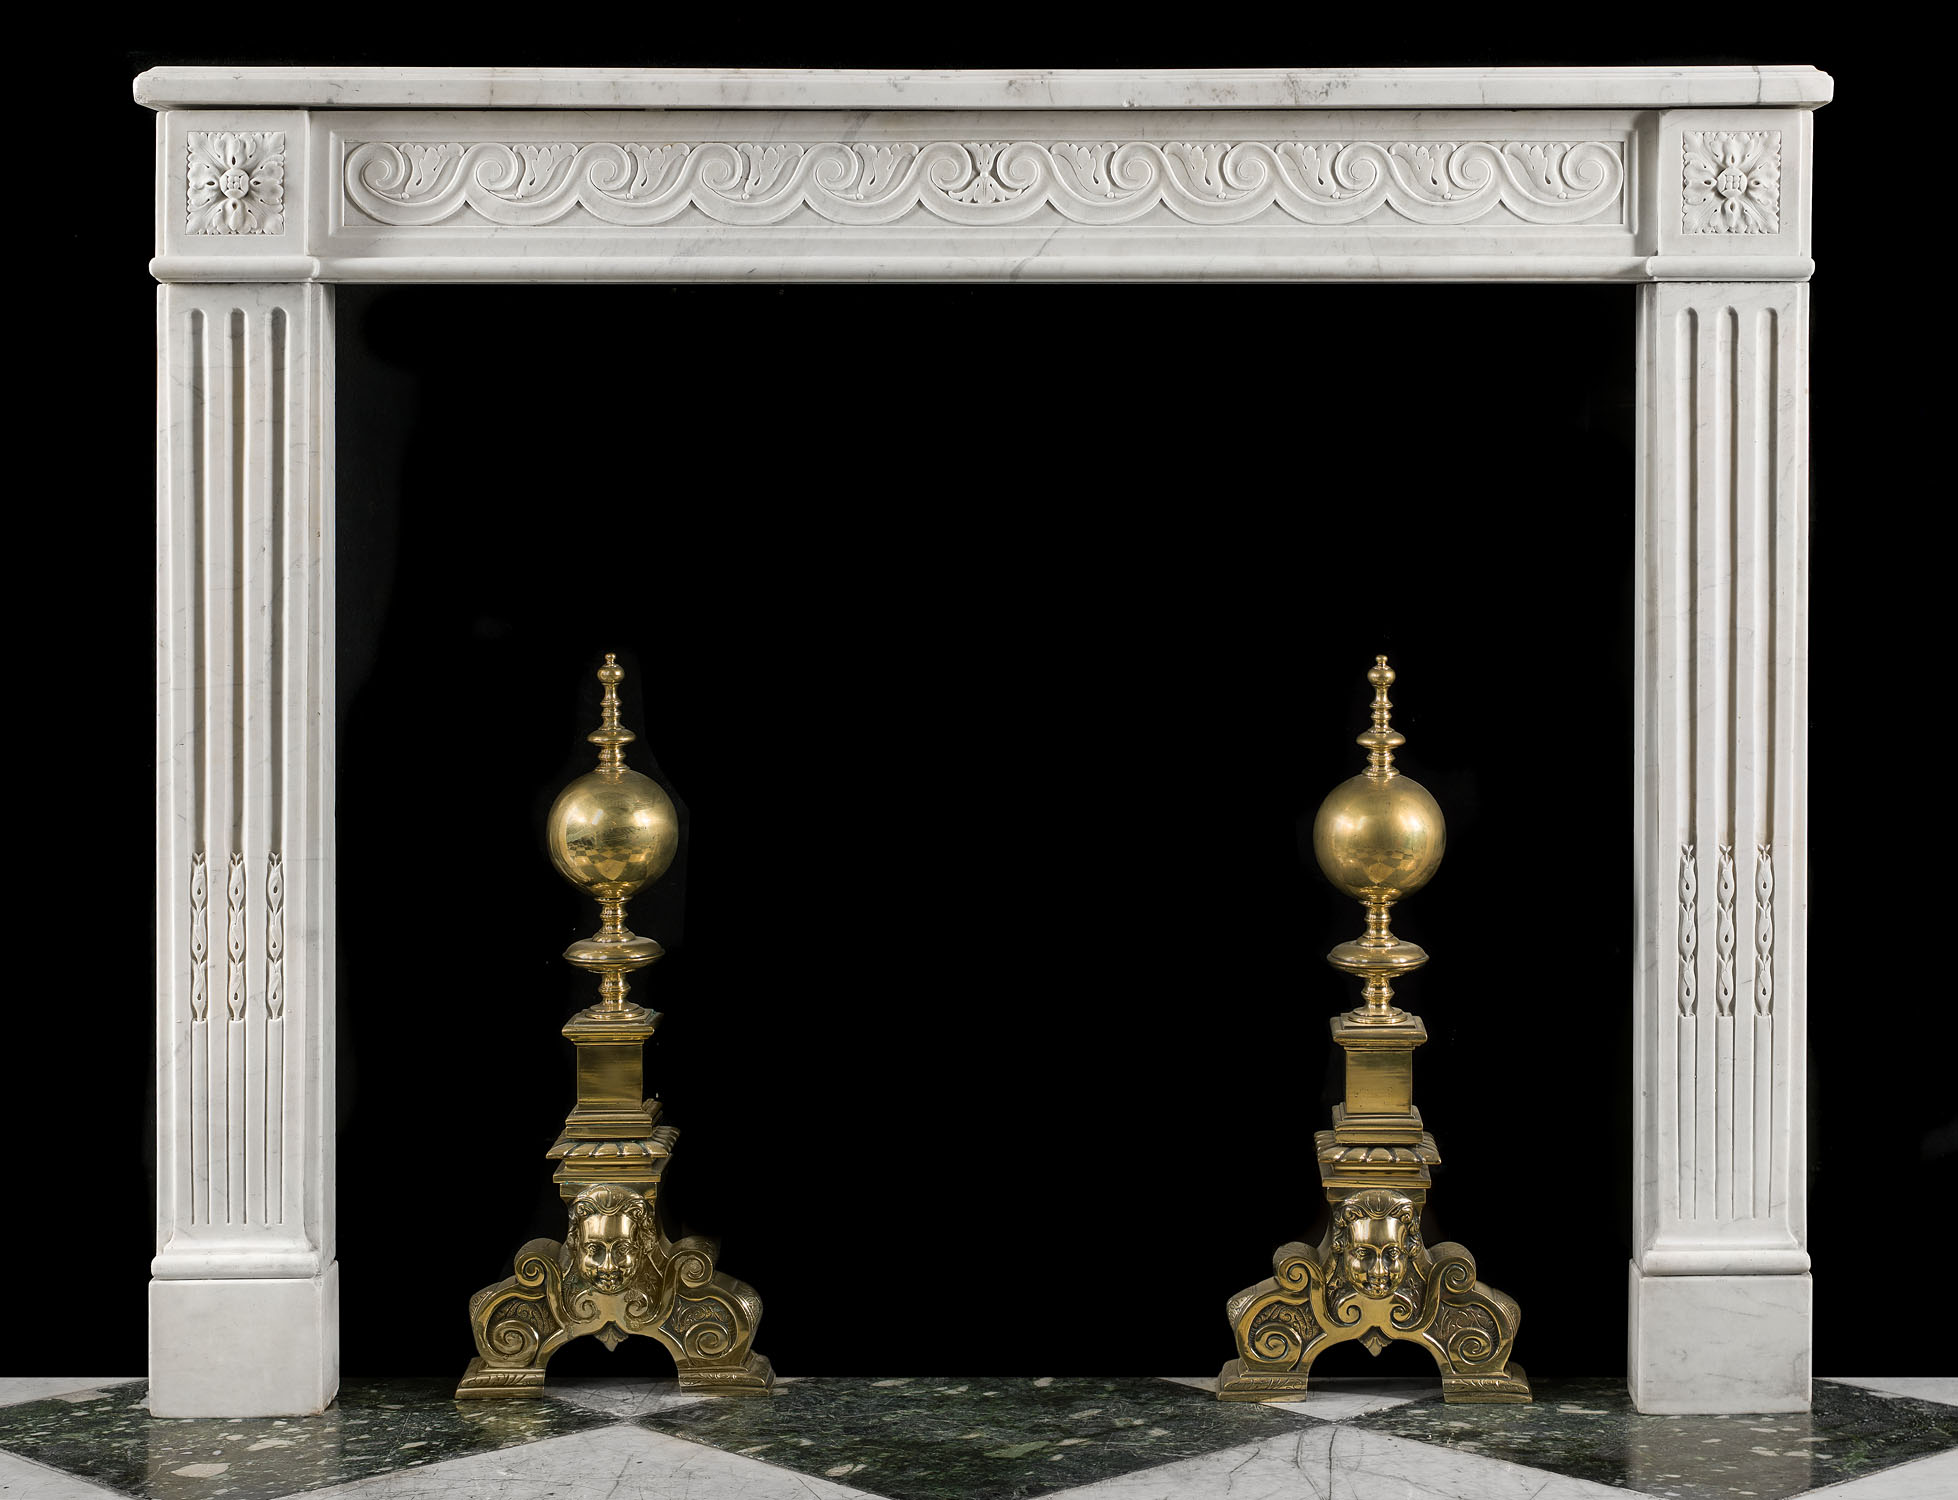 A Carrara Marble Louis XVI antique fireplace surround